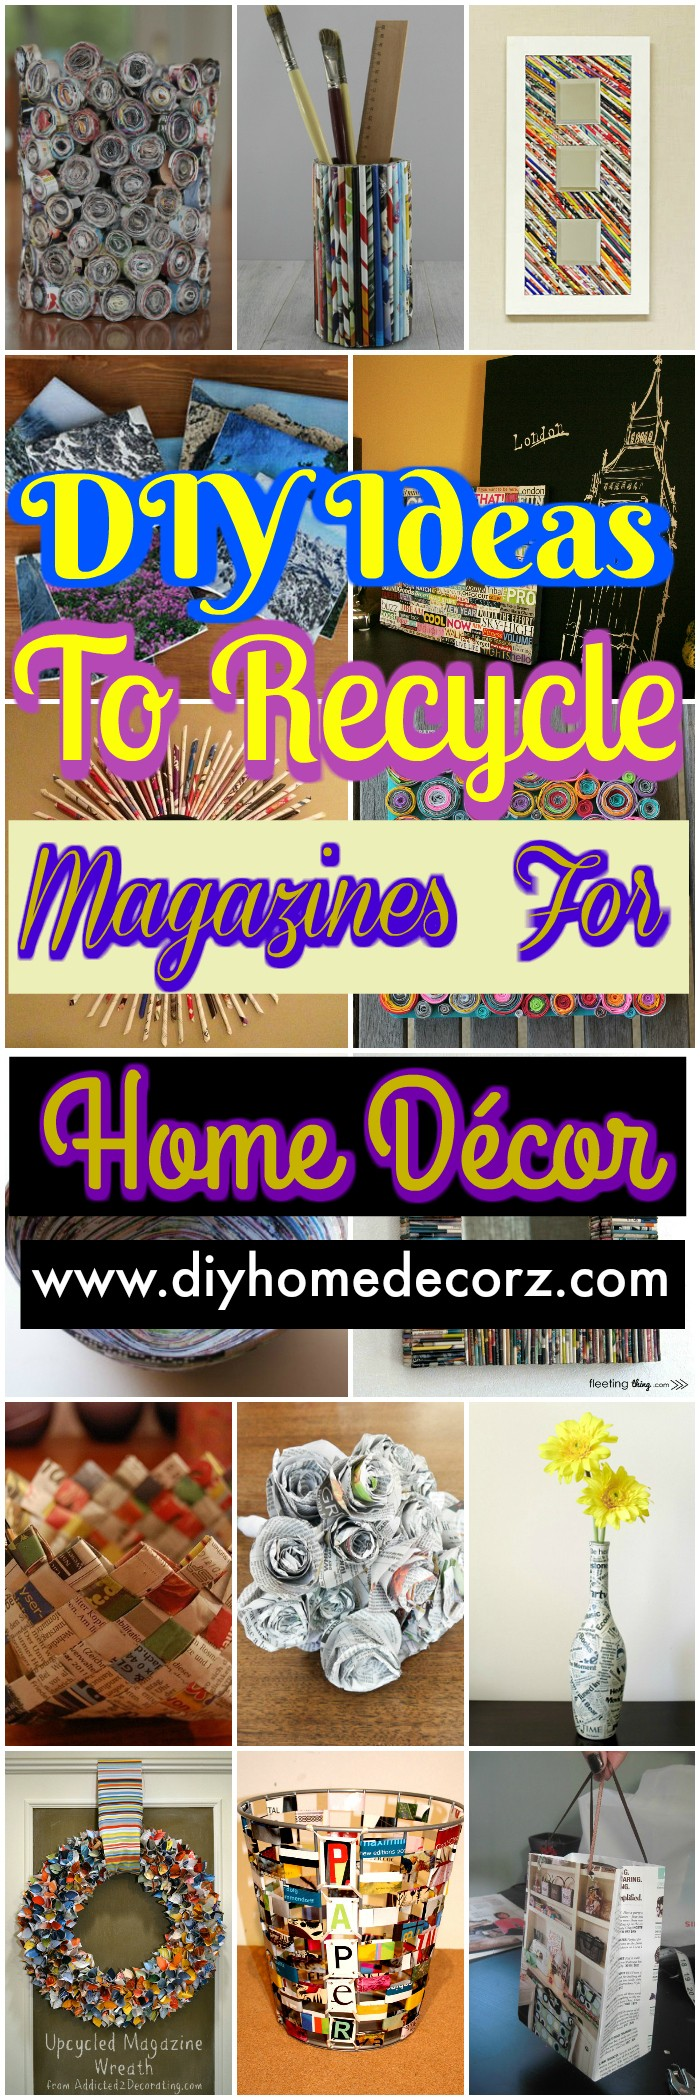 DIY Ideas To Recycle Magazines For Home Décor